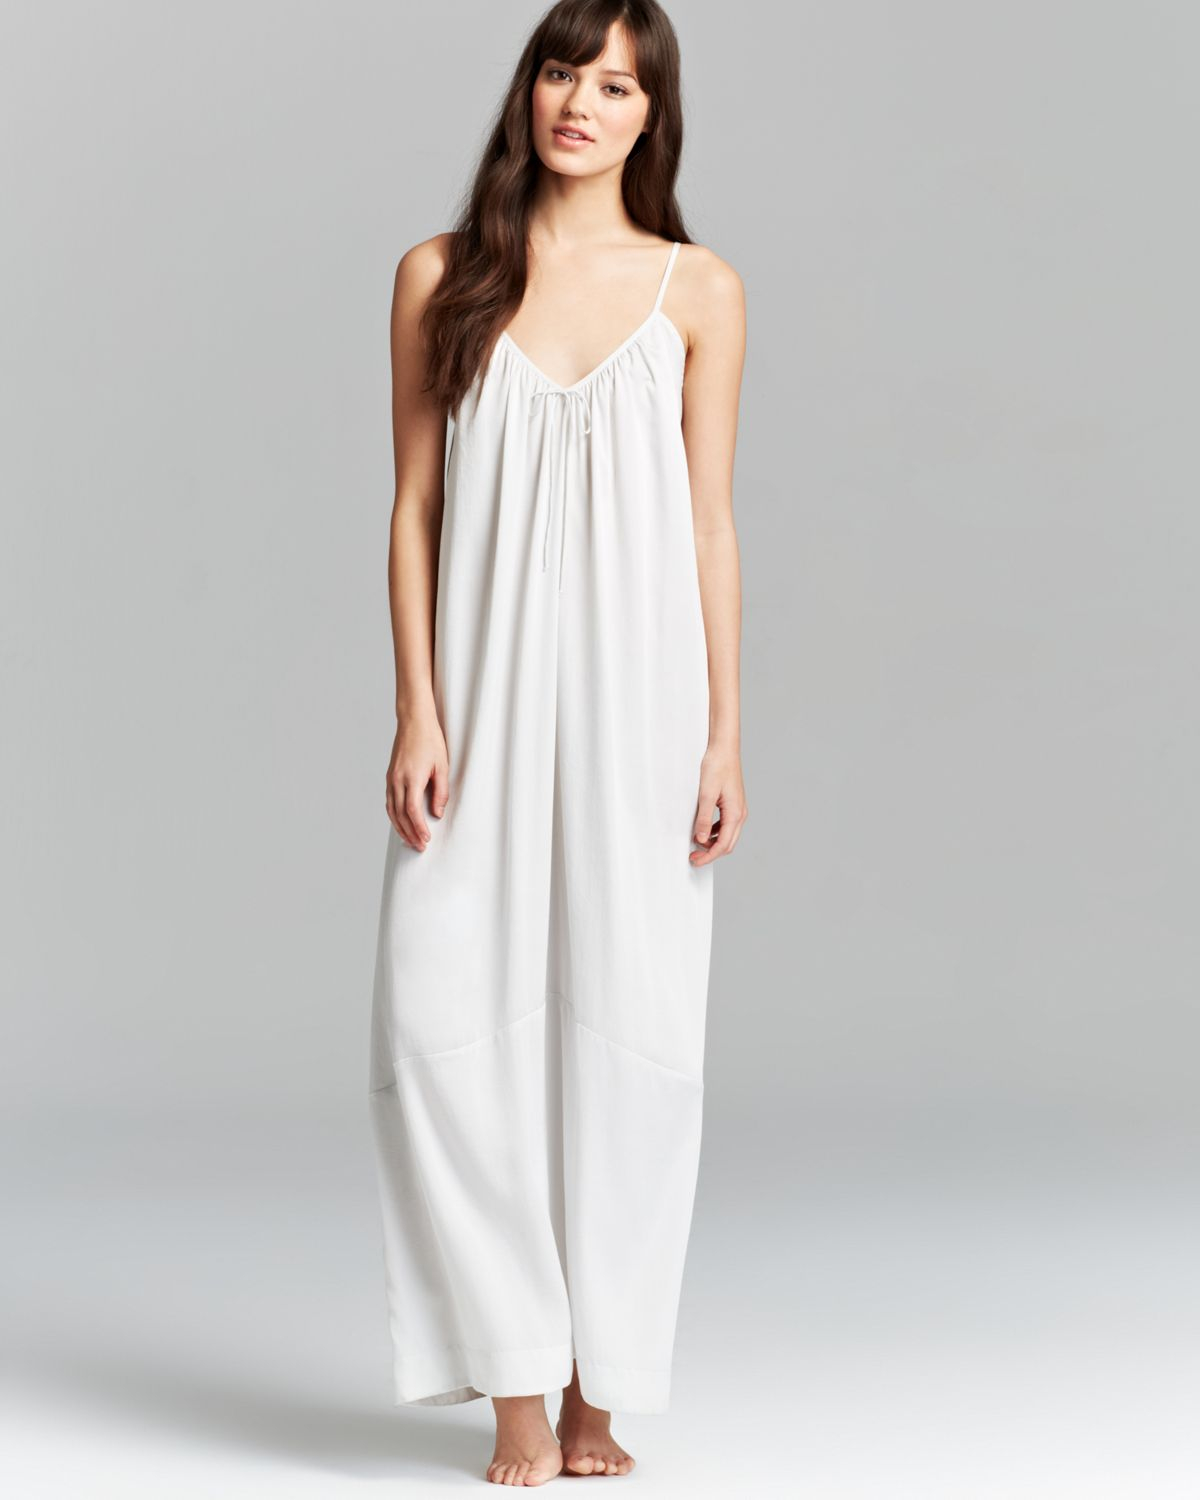 Lyst - Donna Karan Laundered Satin Long Nightgown in Gray 080894be3